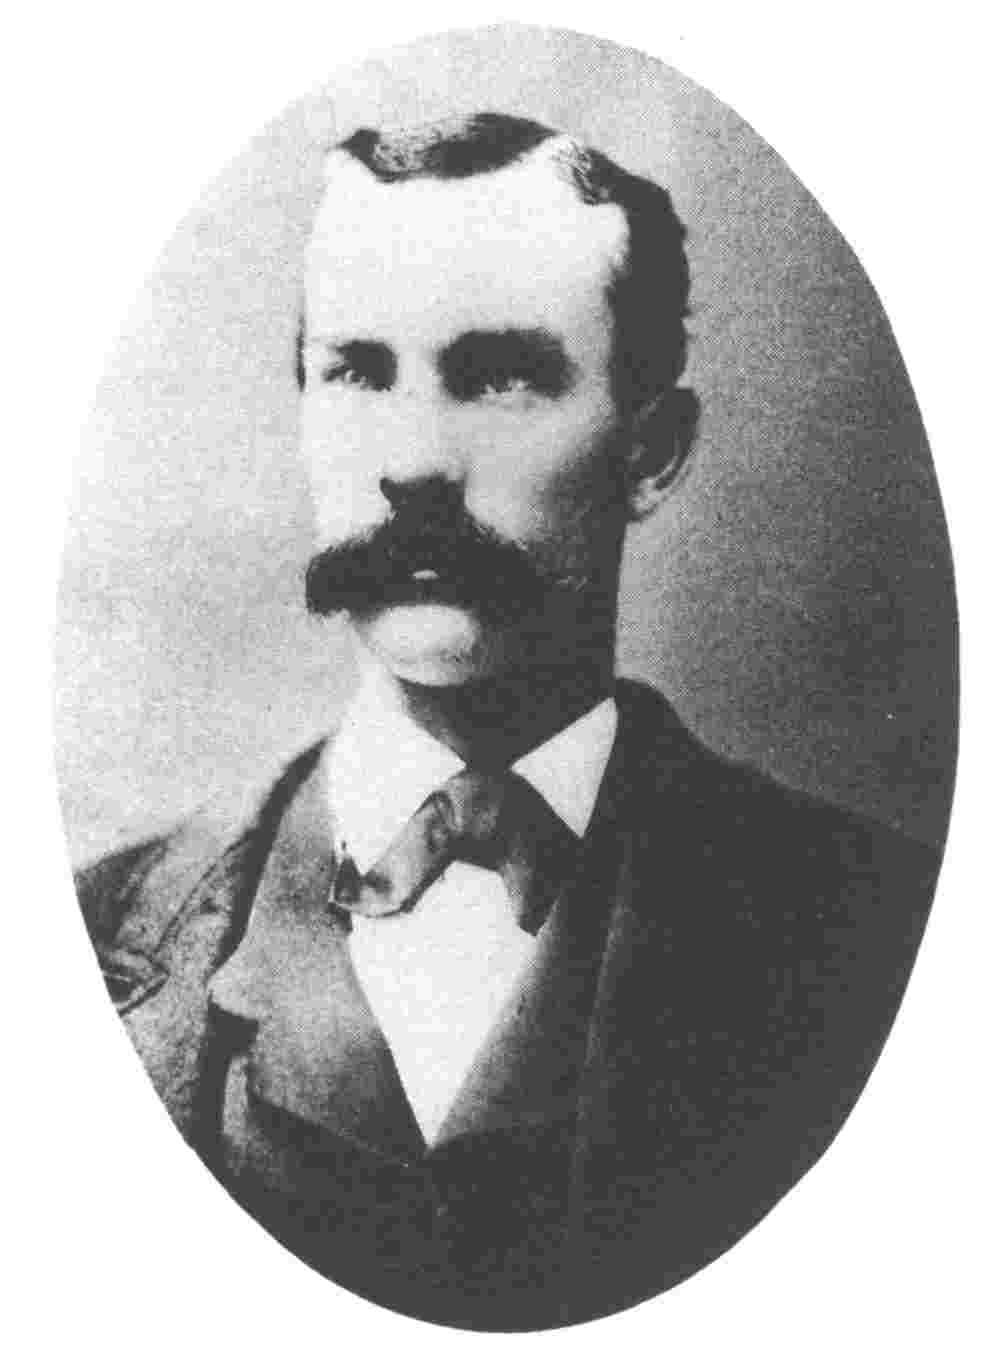 Johnny Ringo Wikipedia